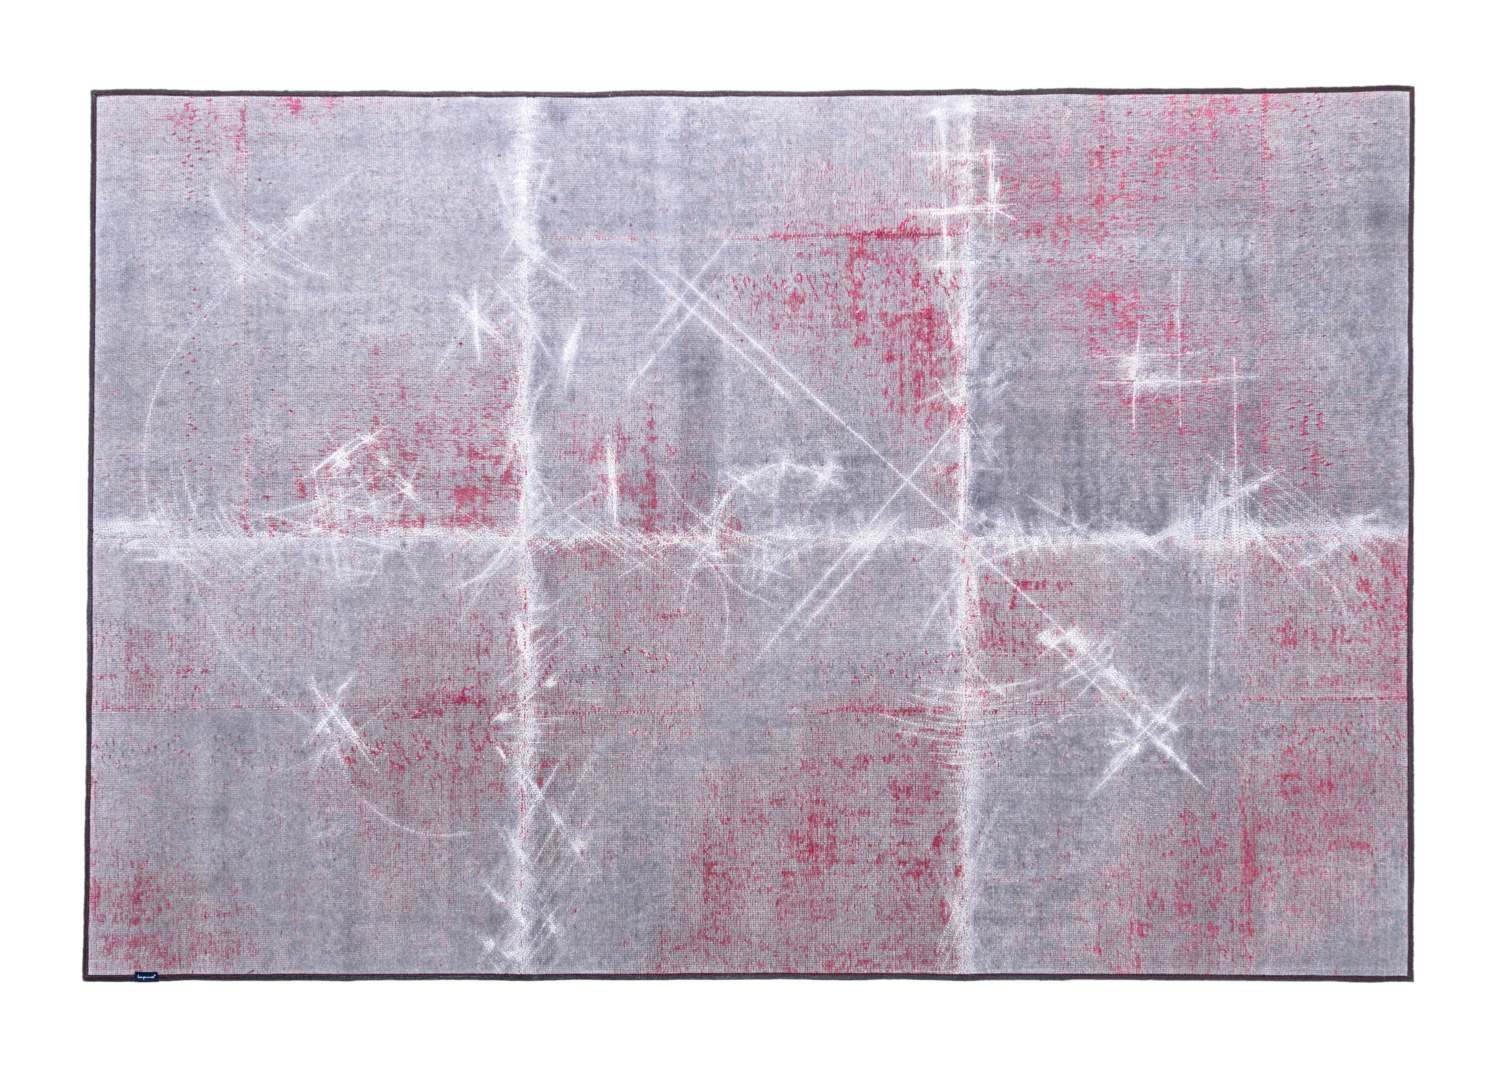 8660_THE MASHUP ABSTRCT_grey & red with silver stitching_CUBIK patch size_170x260_2